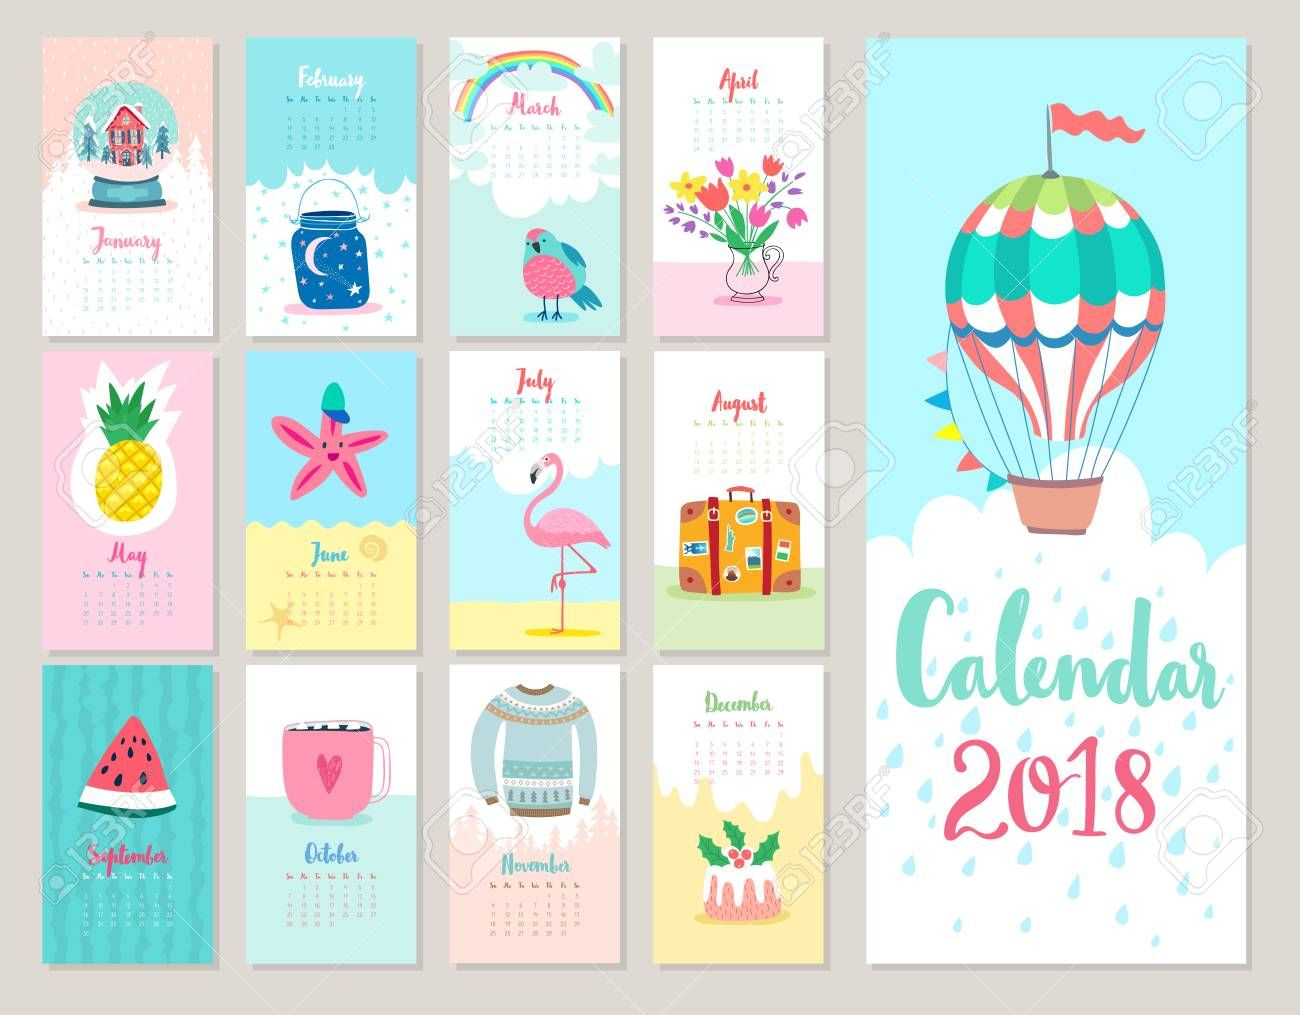 Calendar 2018. Cute monthly calendar with forest animals